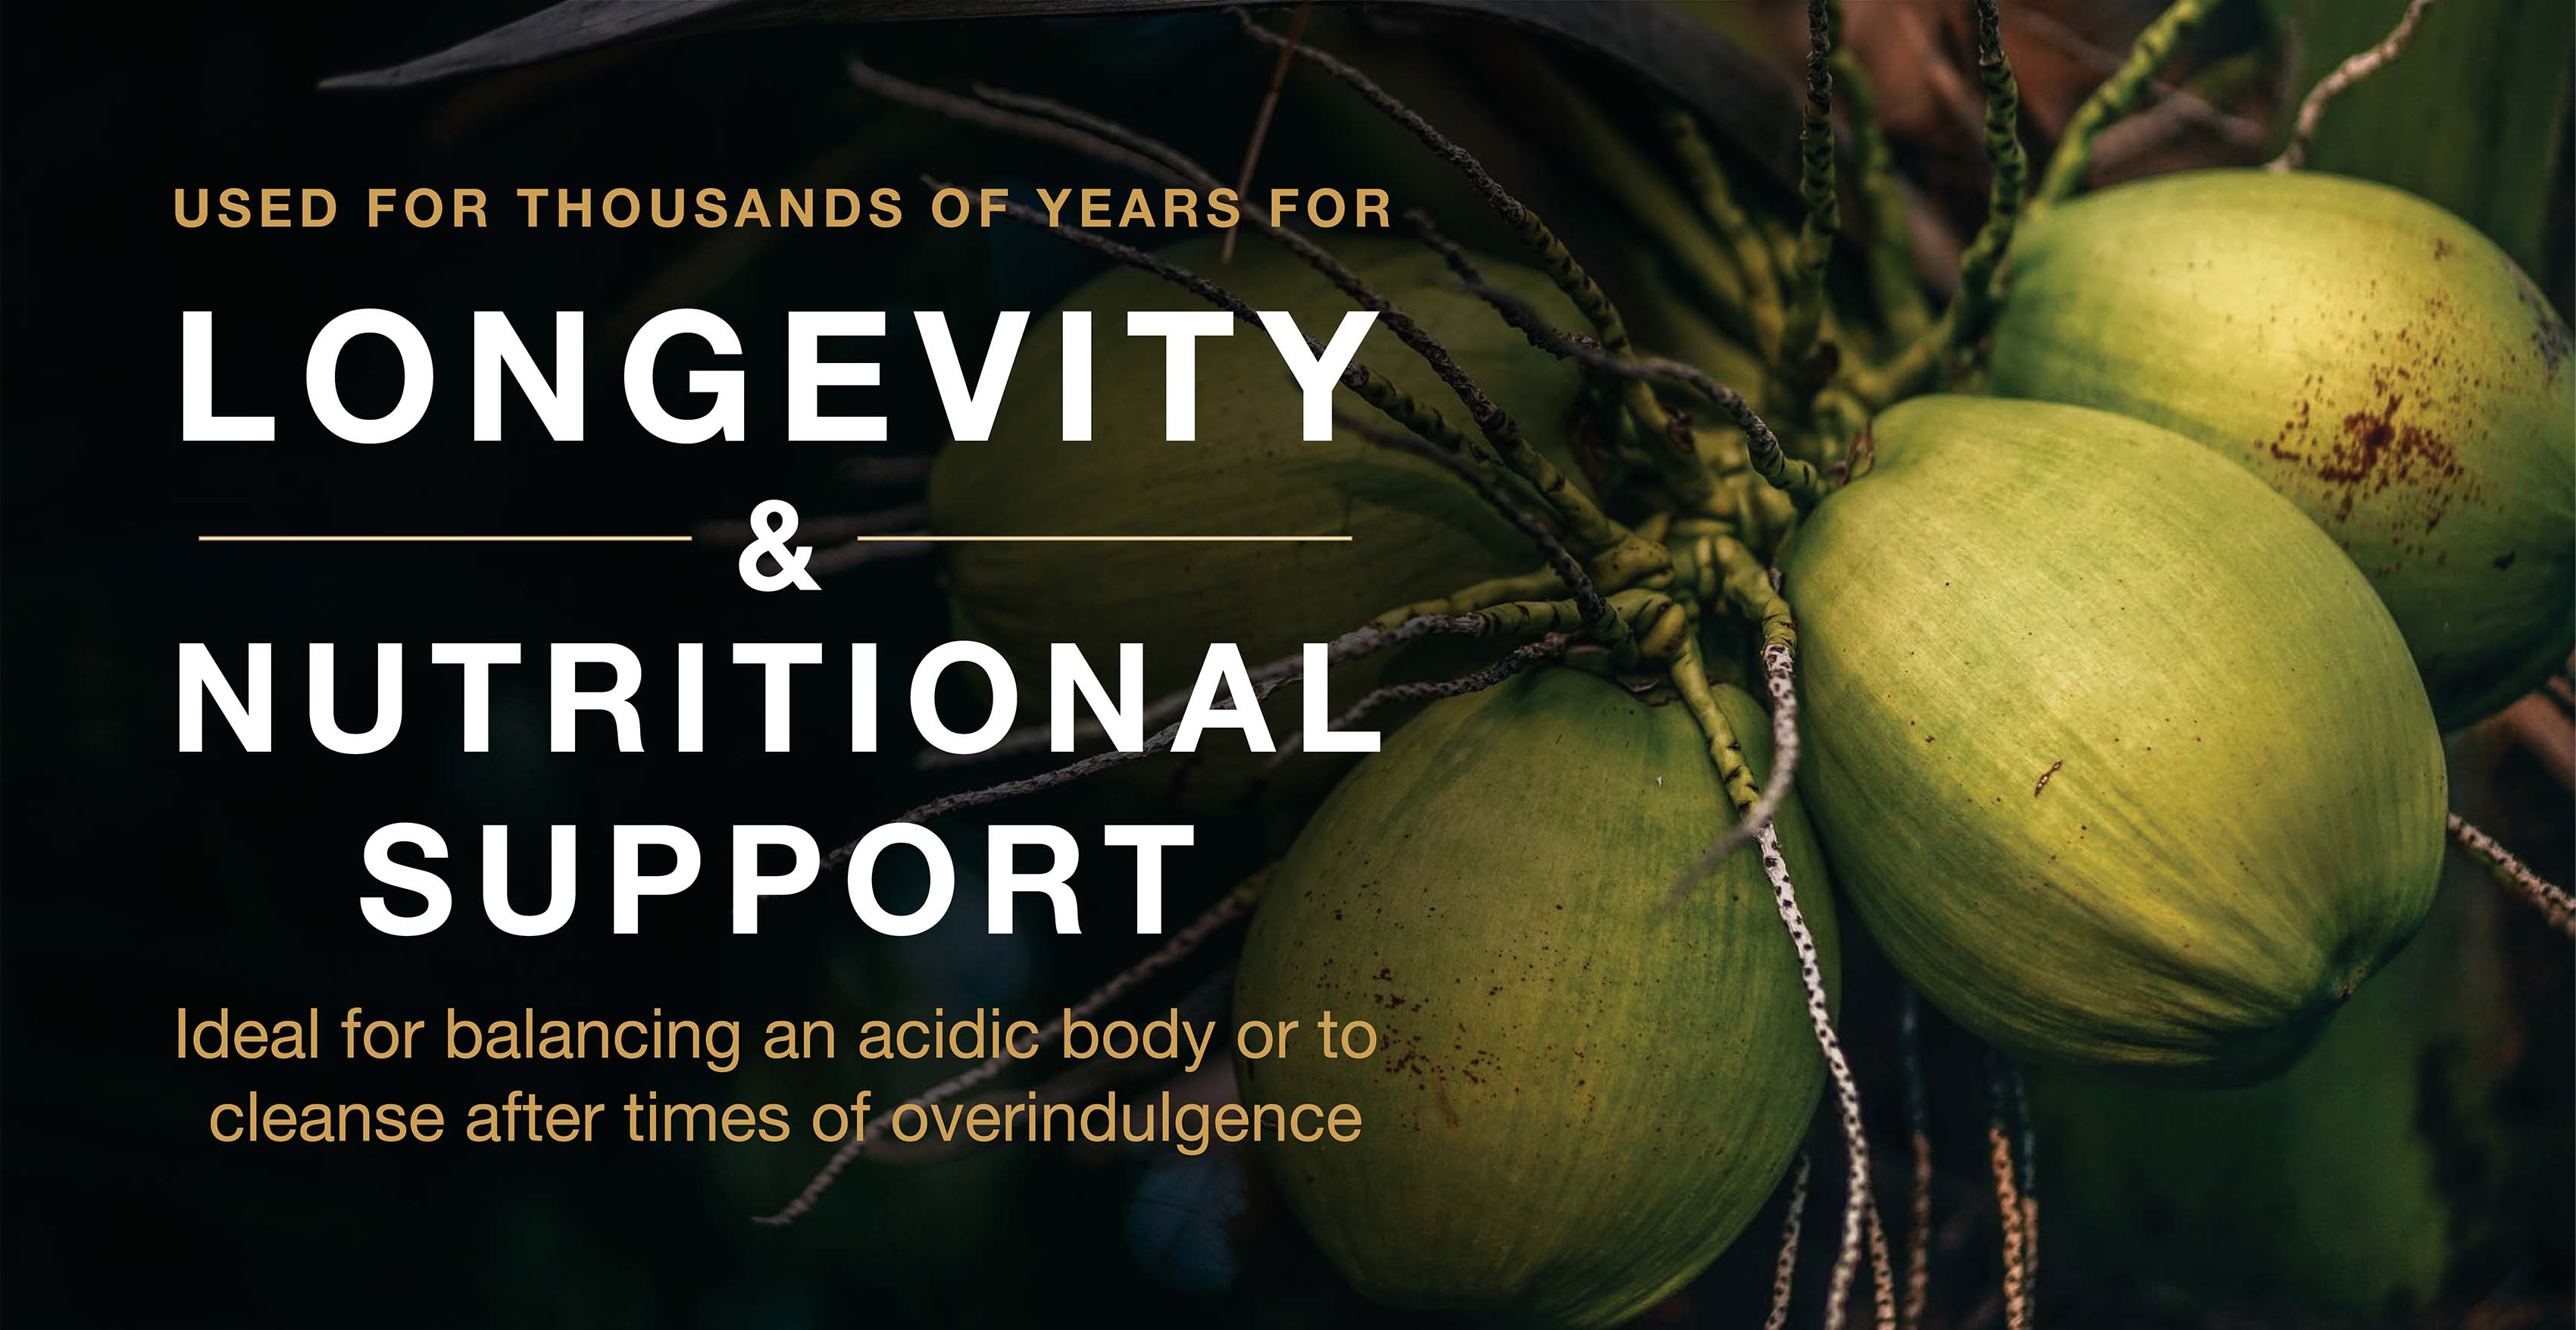 Used for thousands of years for longevity and nutritional support, ideal for balancing an acidic body or to cleanse.